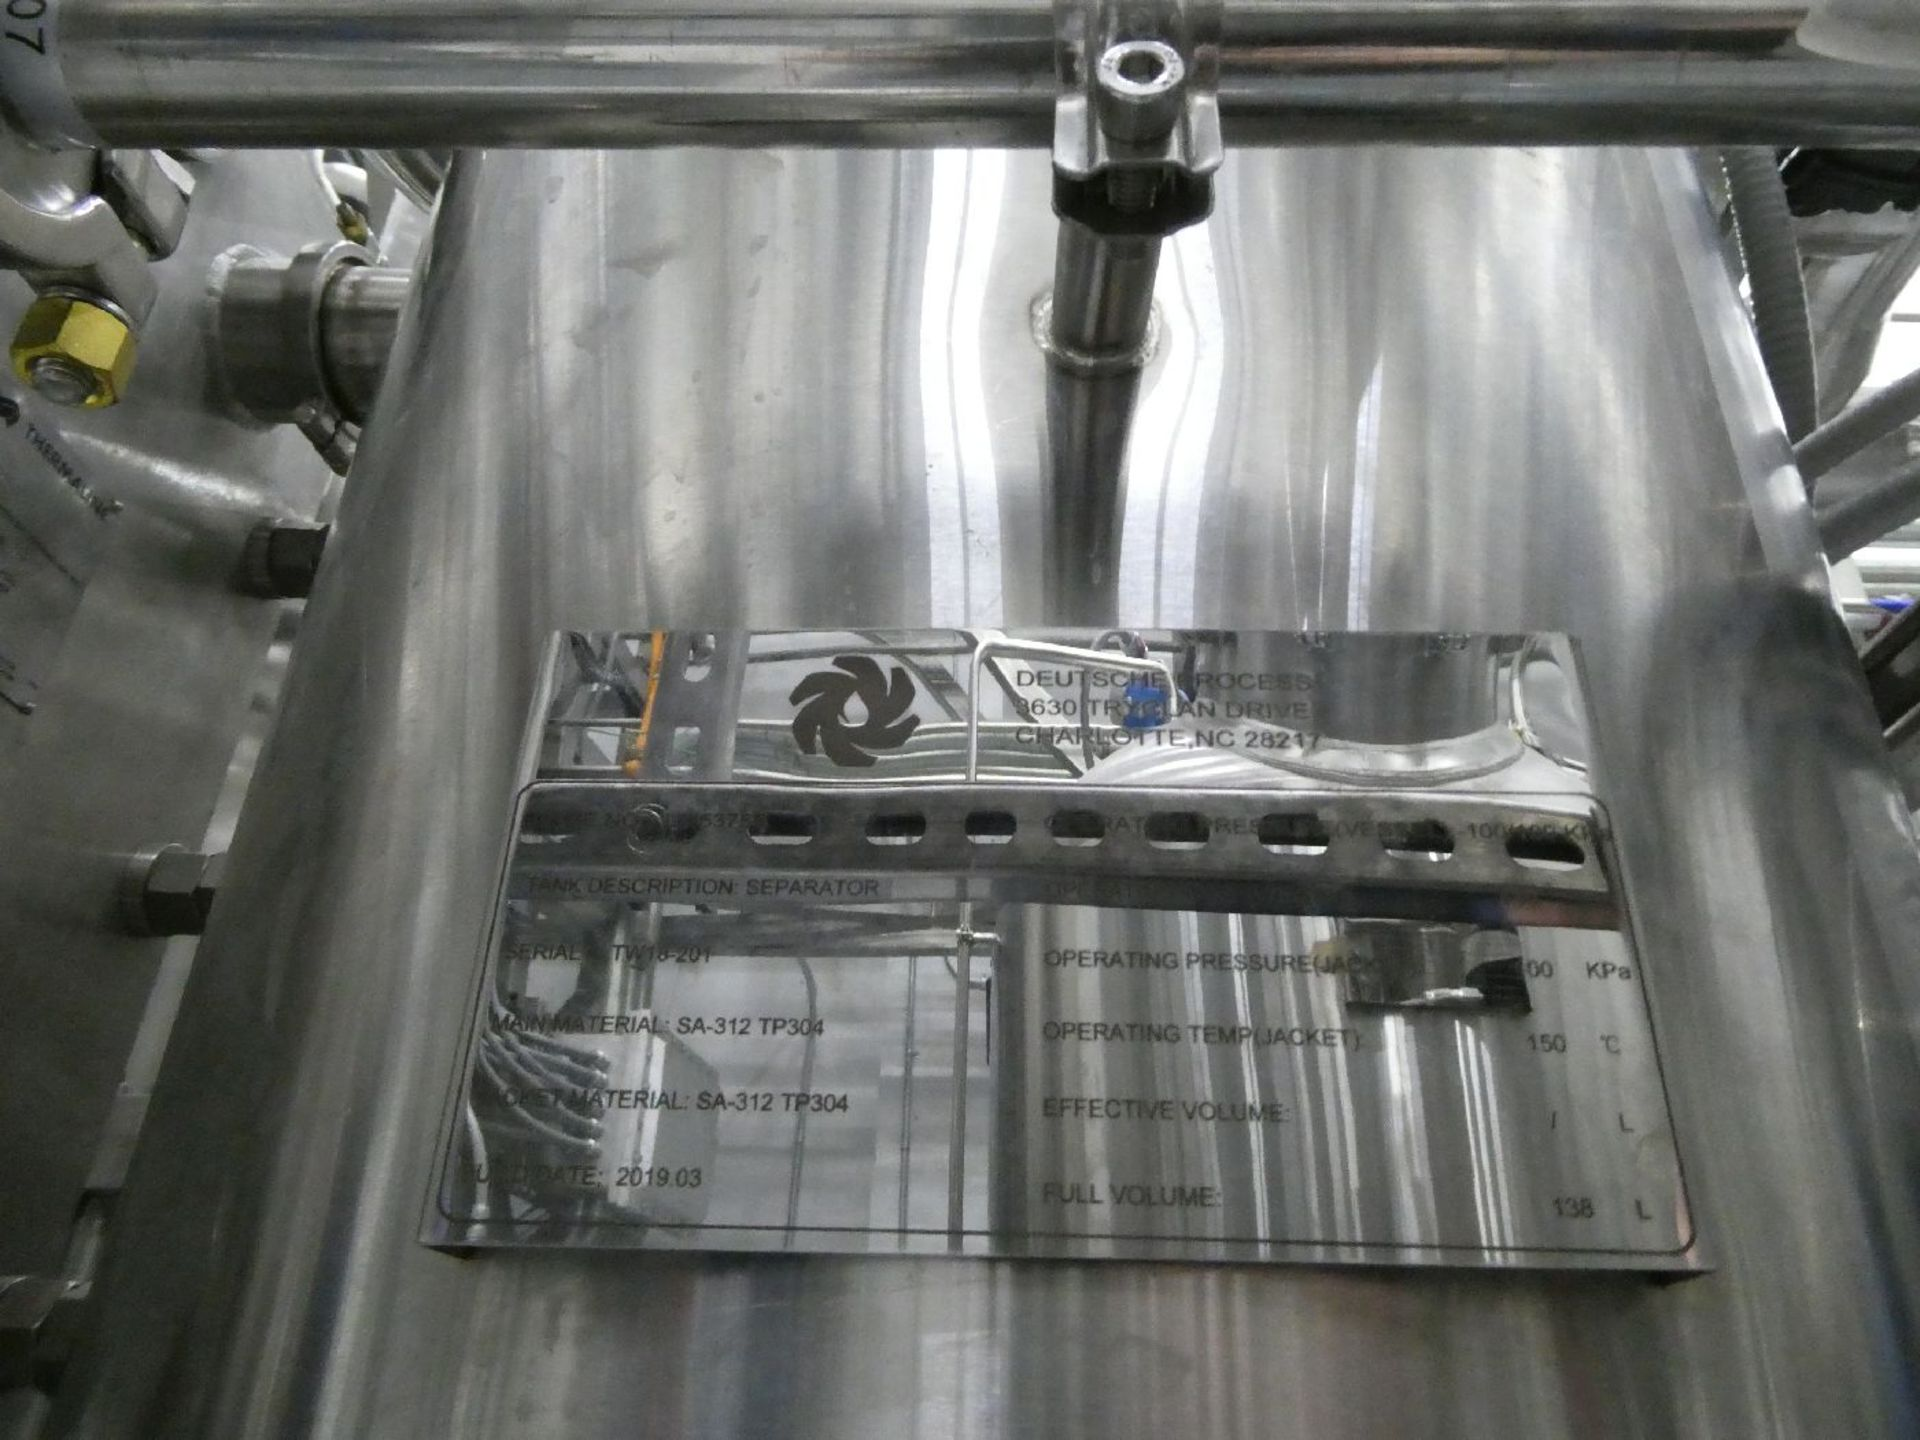 ROTAX Closed Loop Solvent Based Continuous Oil Extraction System - Image 25 of 68